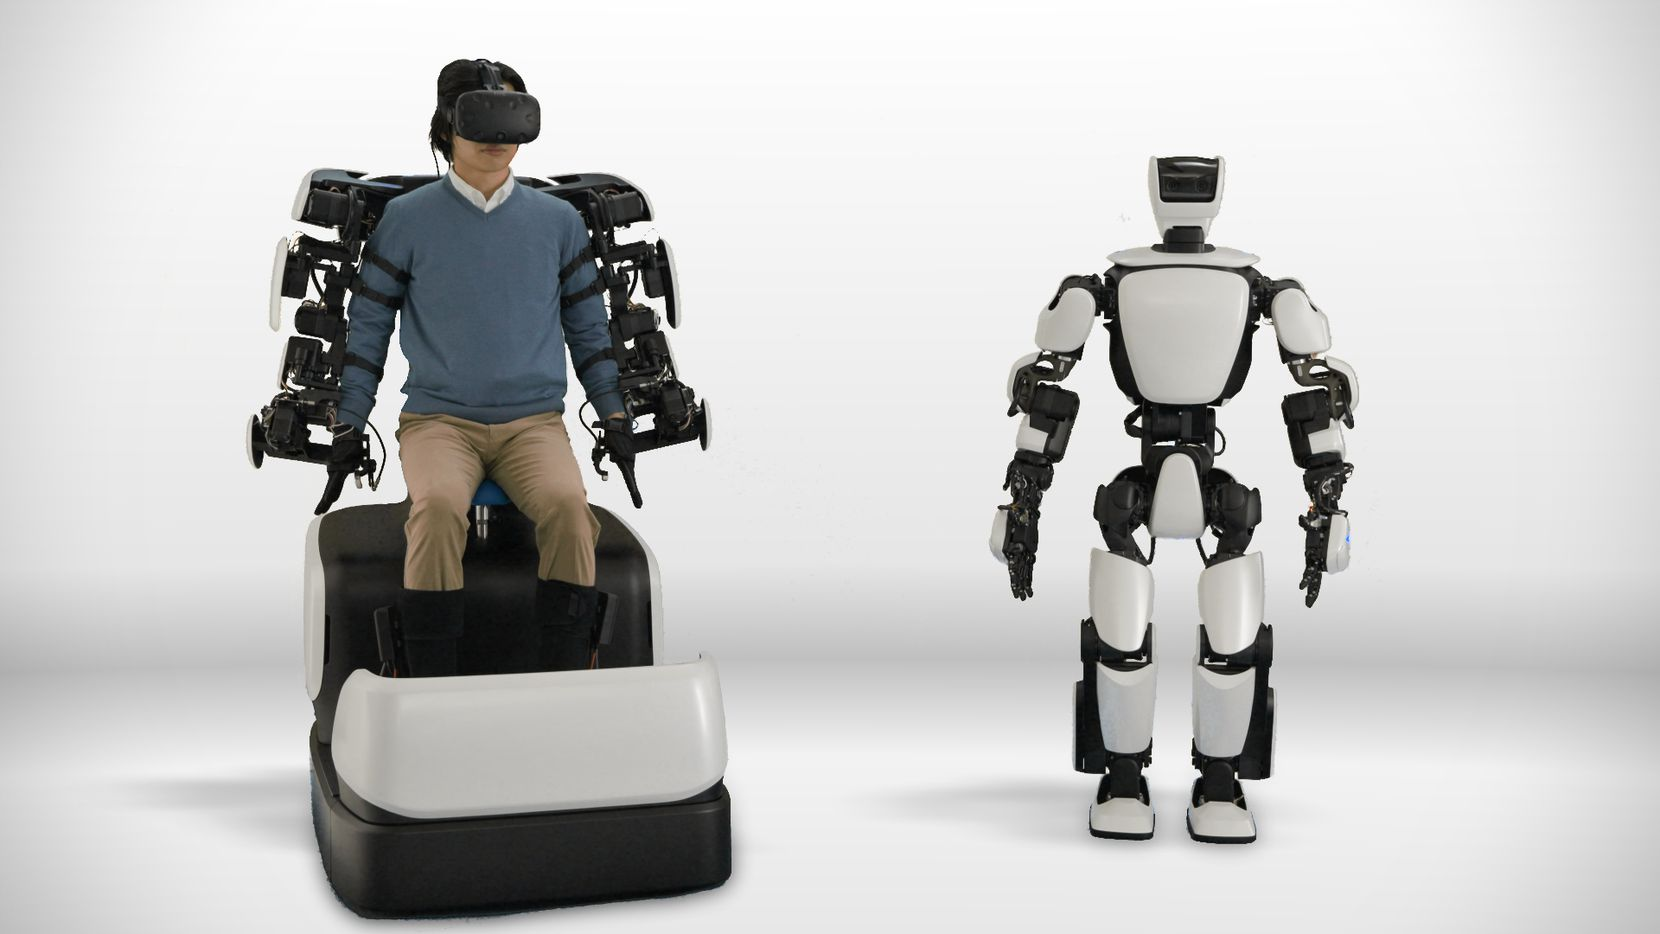 Toyota's third-generation humanoid robot, the T-HR3, reflects the automaker's broad-based exploration of how advanced technologies can help meet people's unique mobility needs.